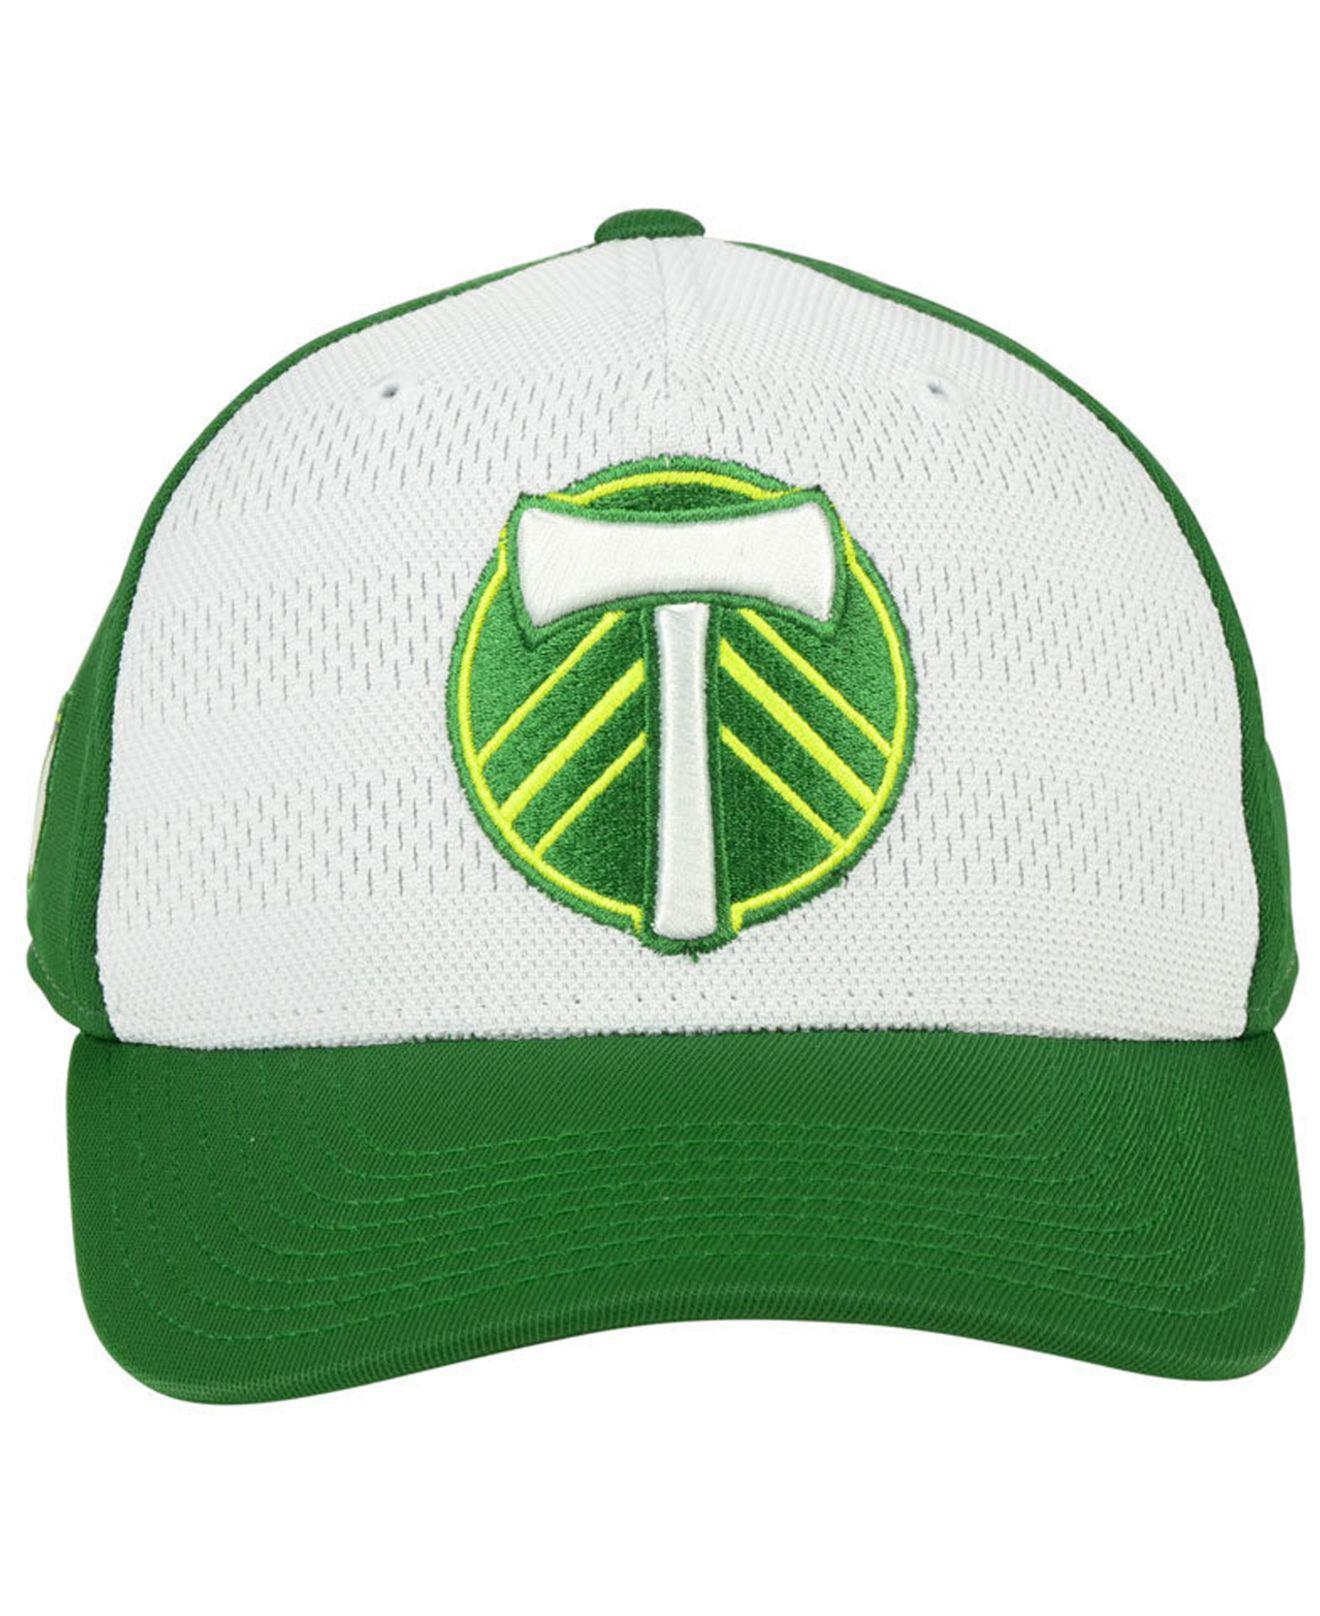 buy online 56685 34917 ... view fullscreen e03bb f4771  order lyst adidas portland timbers  authentic flex cap in green for men 8d3d1 abbce